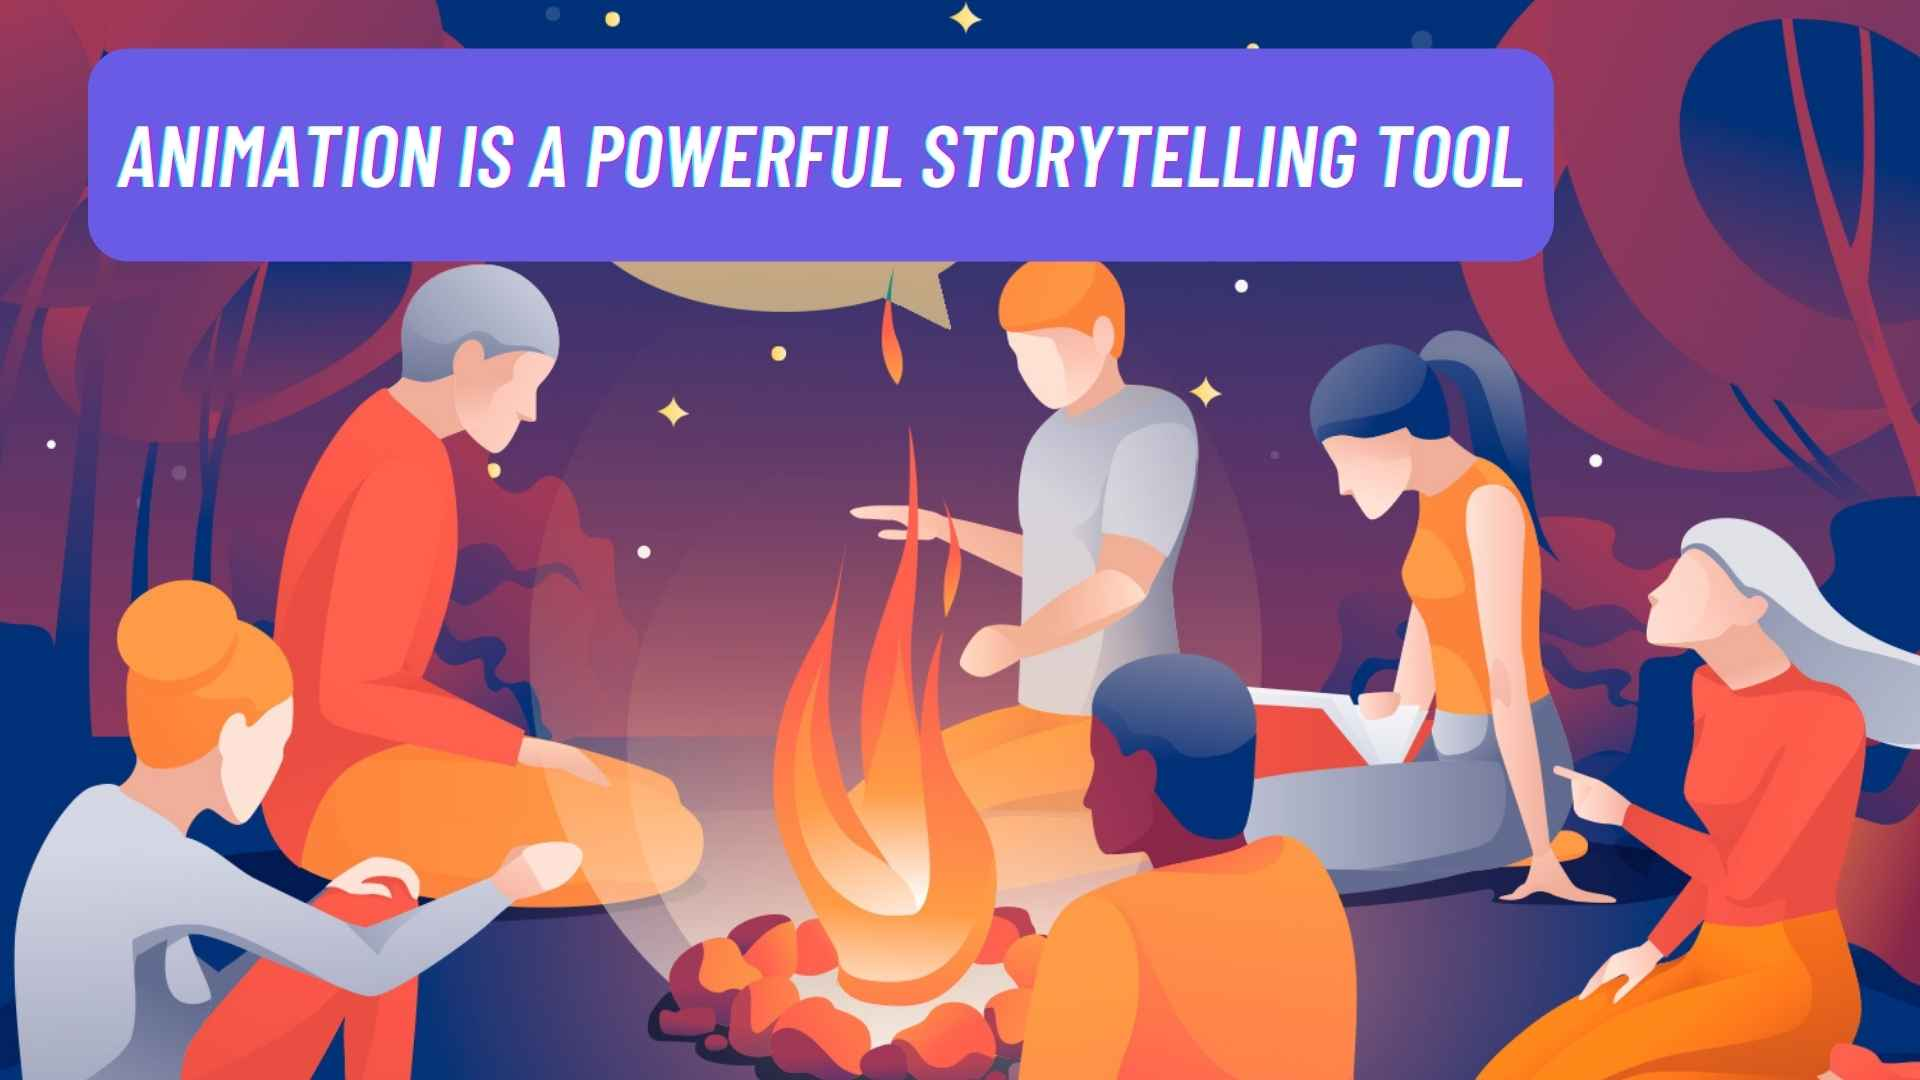 Storytelling by the fire - an article about storytelling with animation